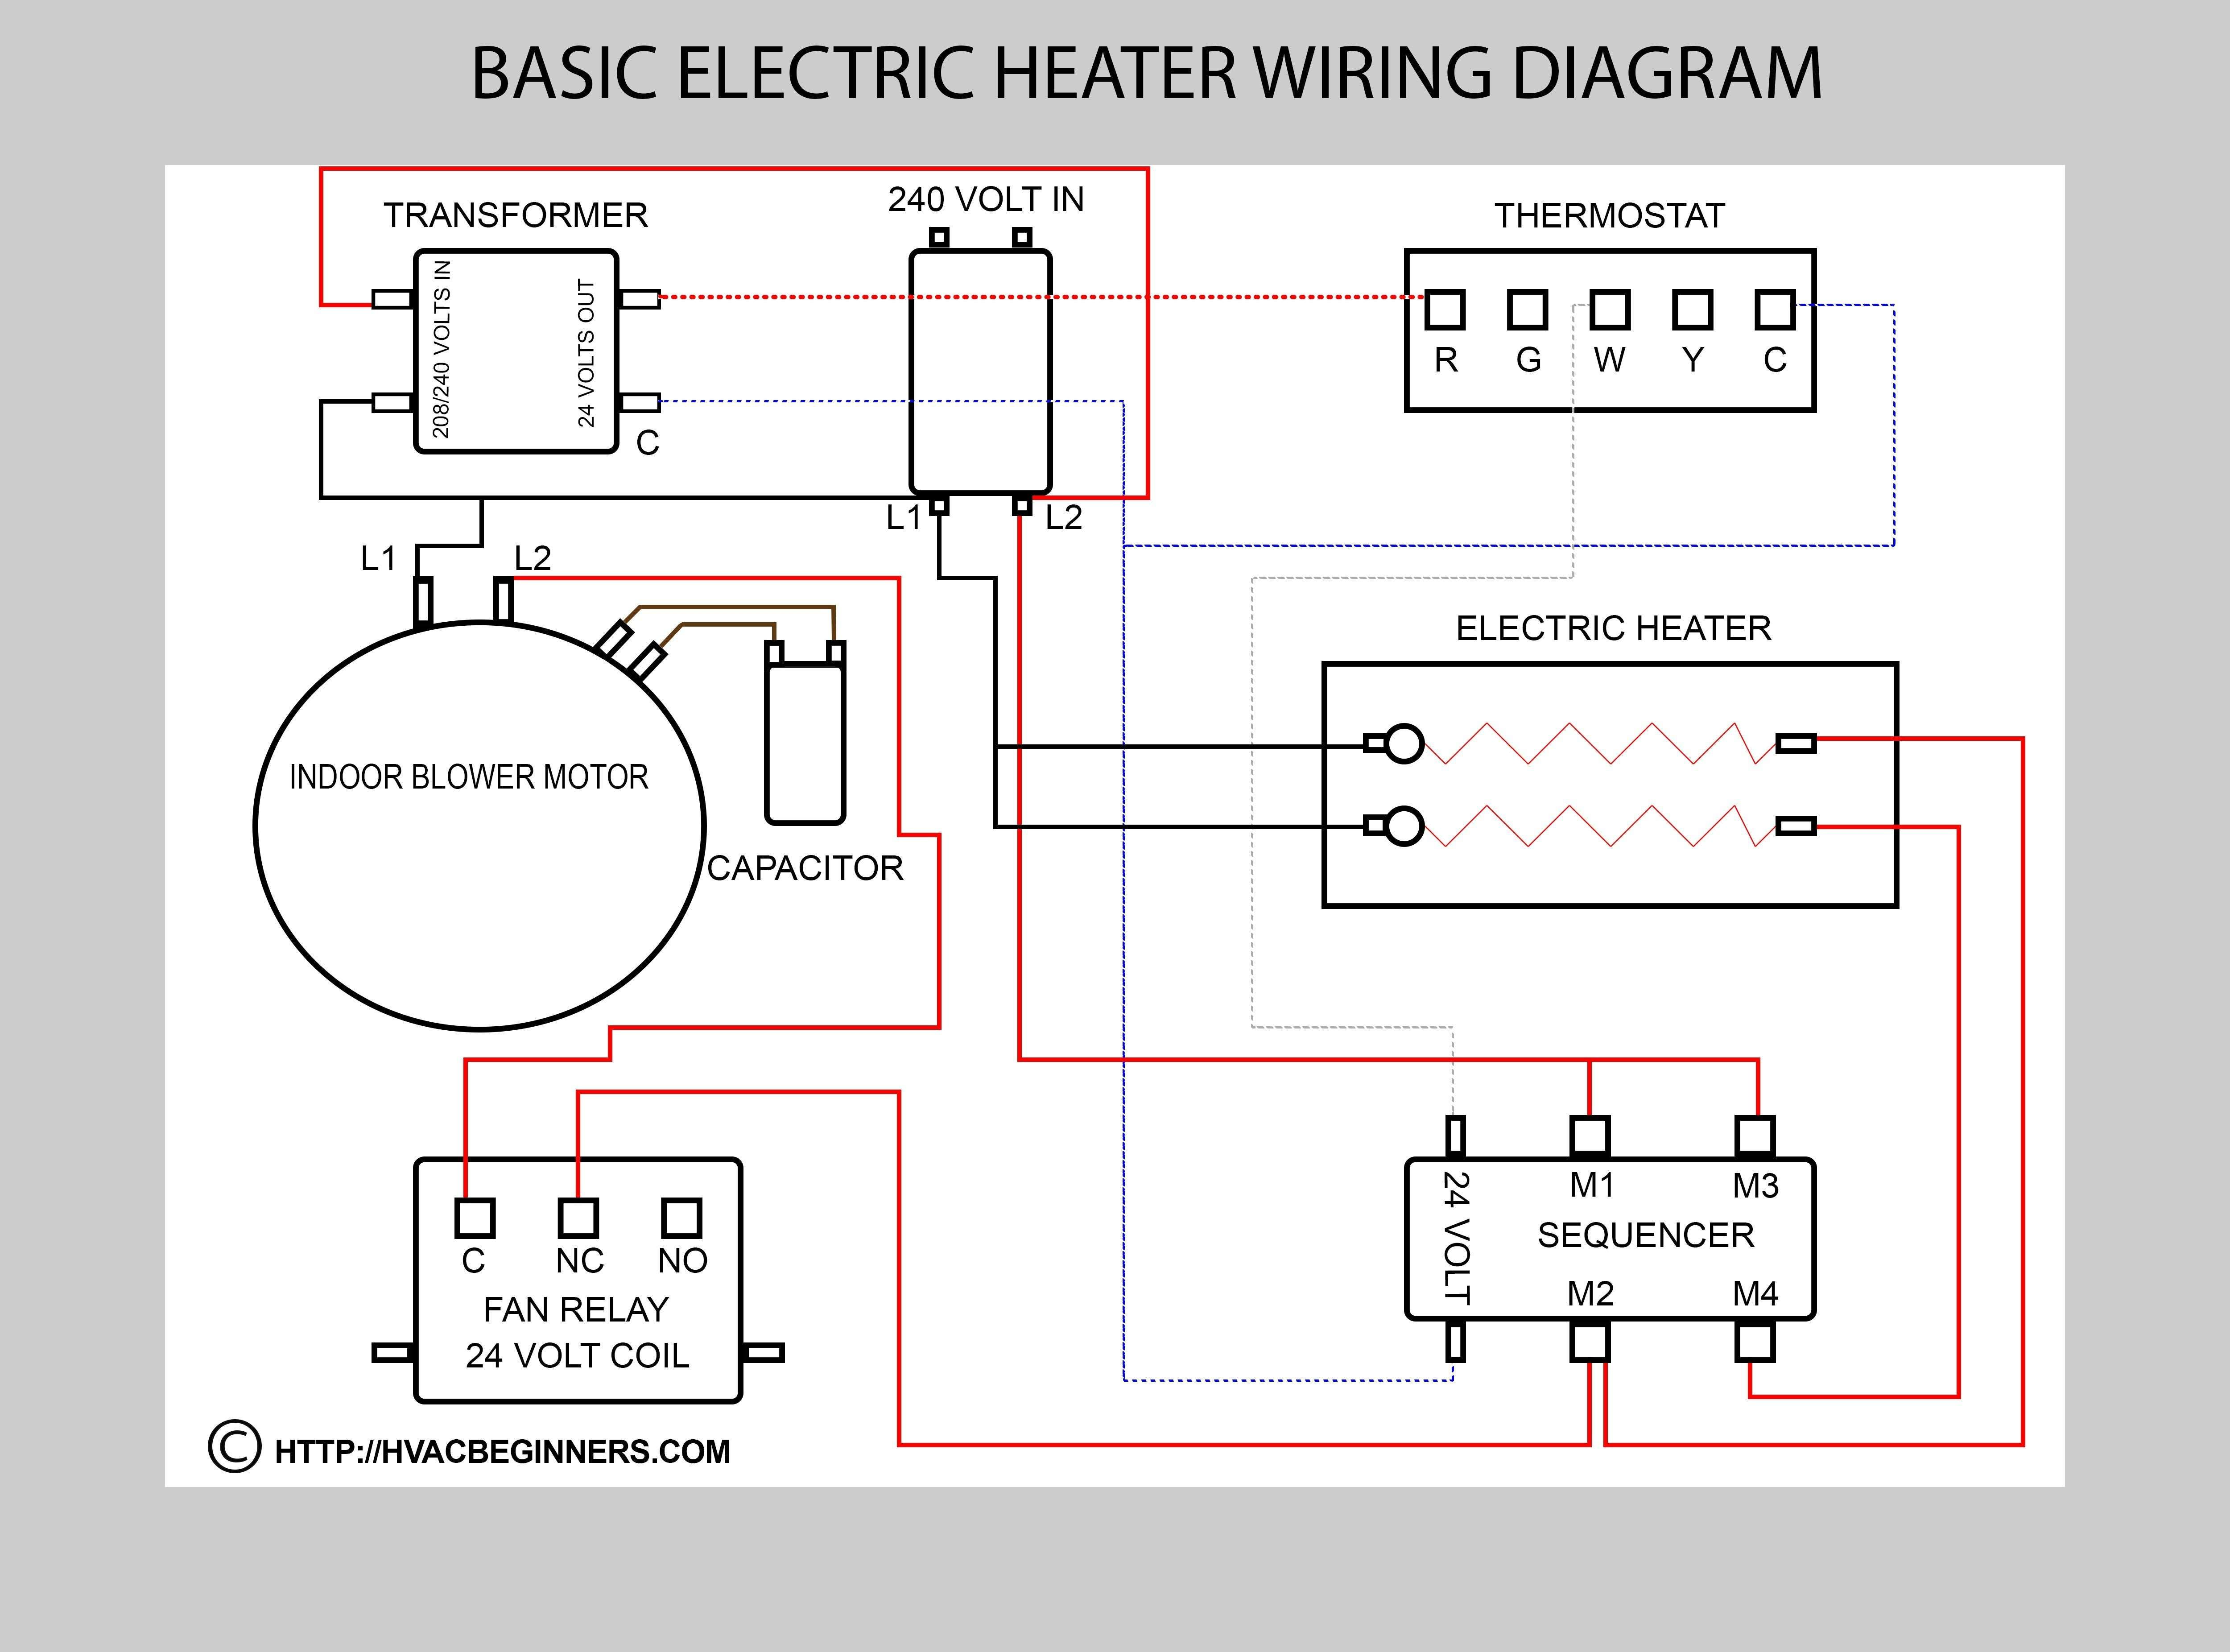 Wiring Diagram With Images Electrical Circuit Diagram